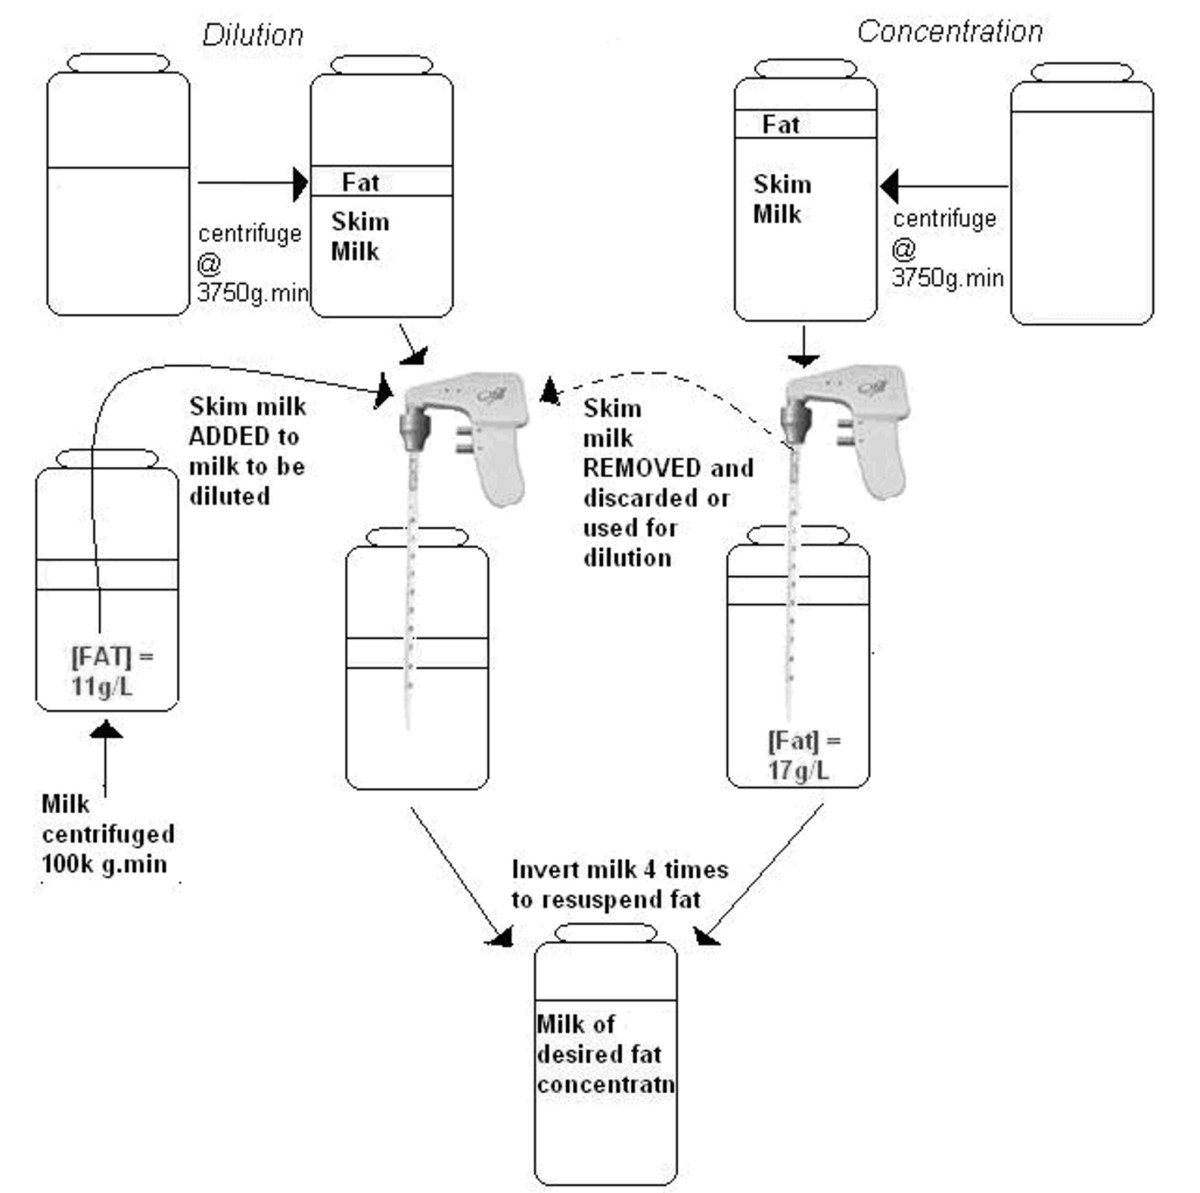 http://static-content.springer.com/image/art%3A10.1186%2F1746-4358-4-3/MediaObjects/13006_2009_Article_76_Fig1_HTML.jpg